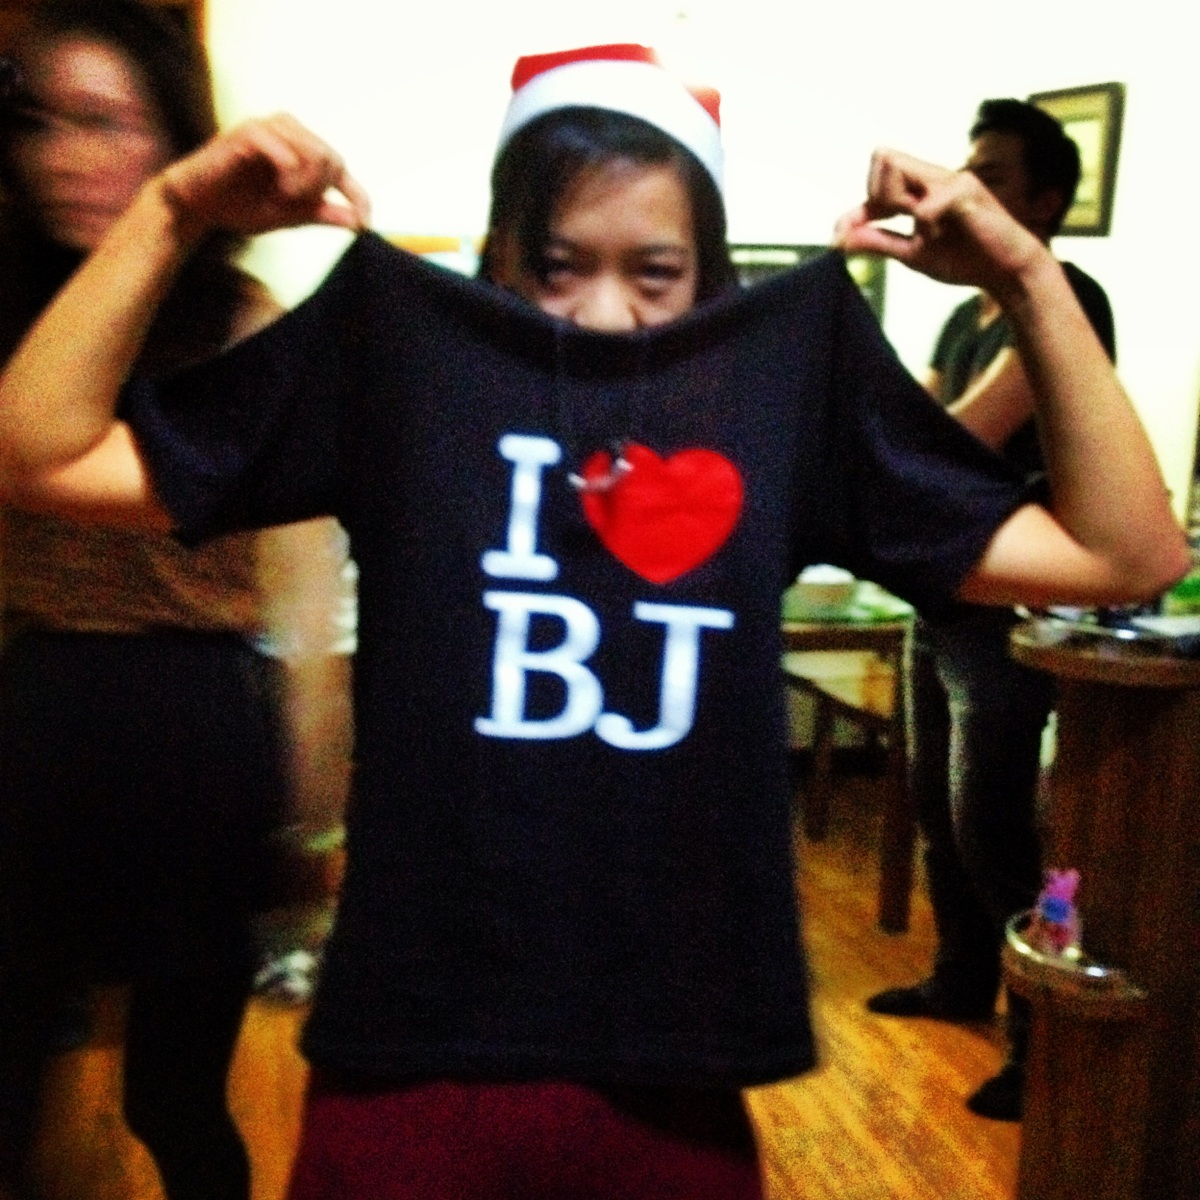 A shirt for all those who love BJ.